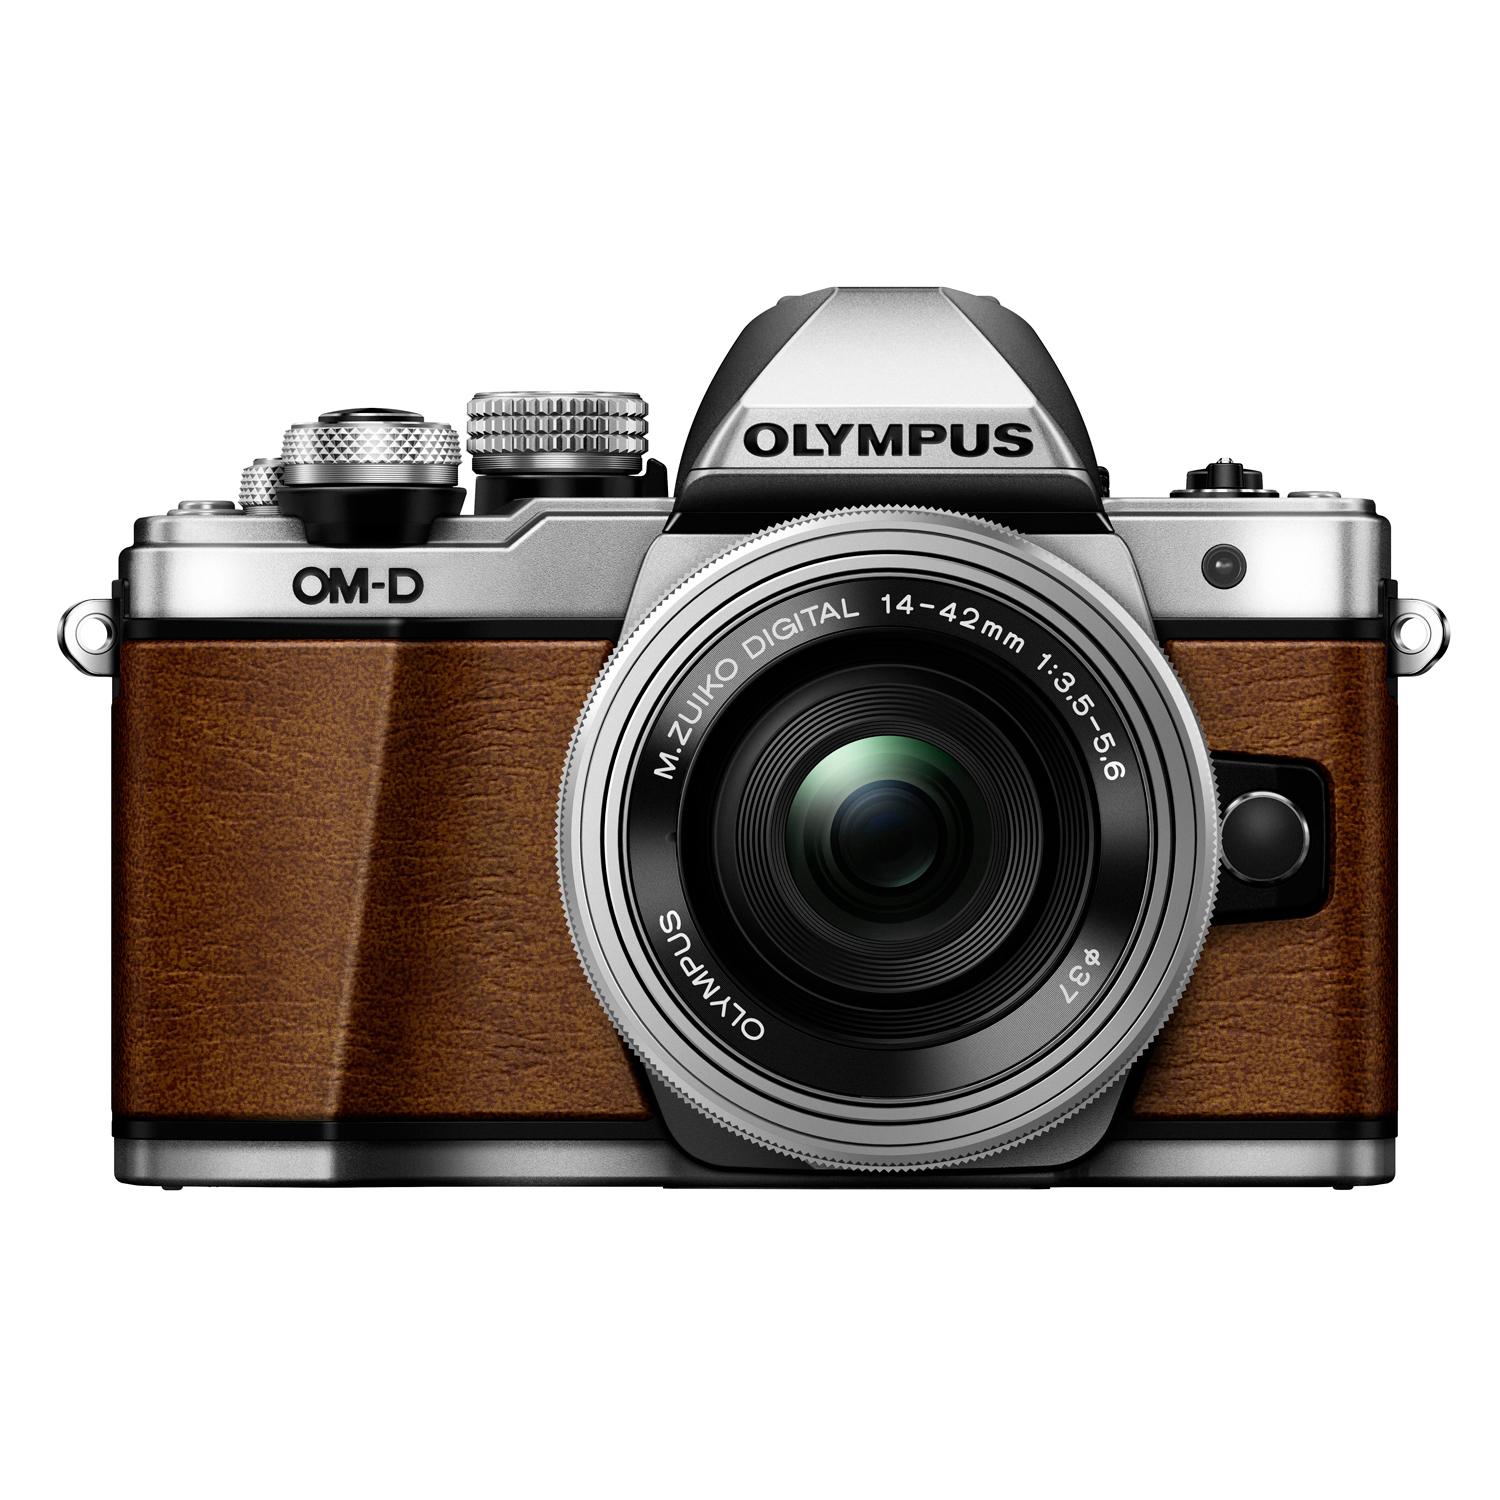 OM-D E-M10 Mark II Limited Edition Mirrorless Digital Camera with 14-42mm Lens Silver